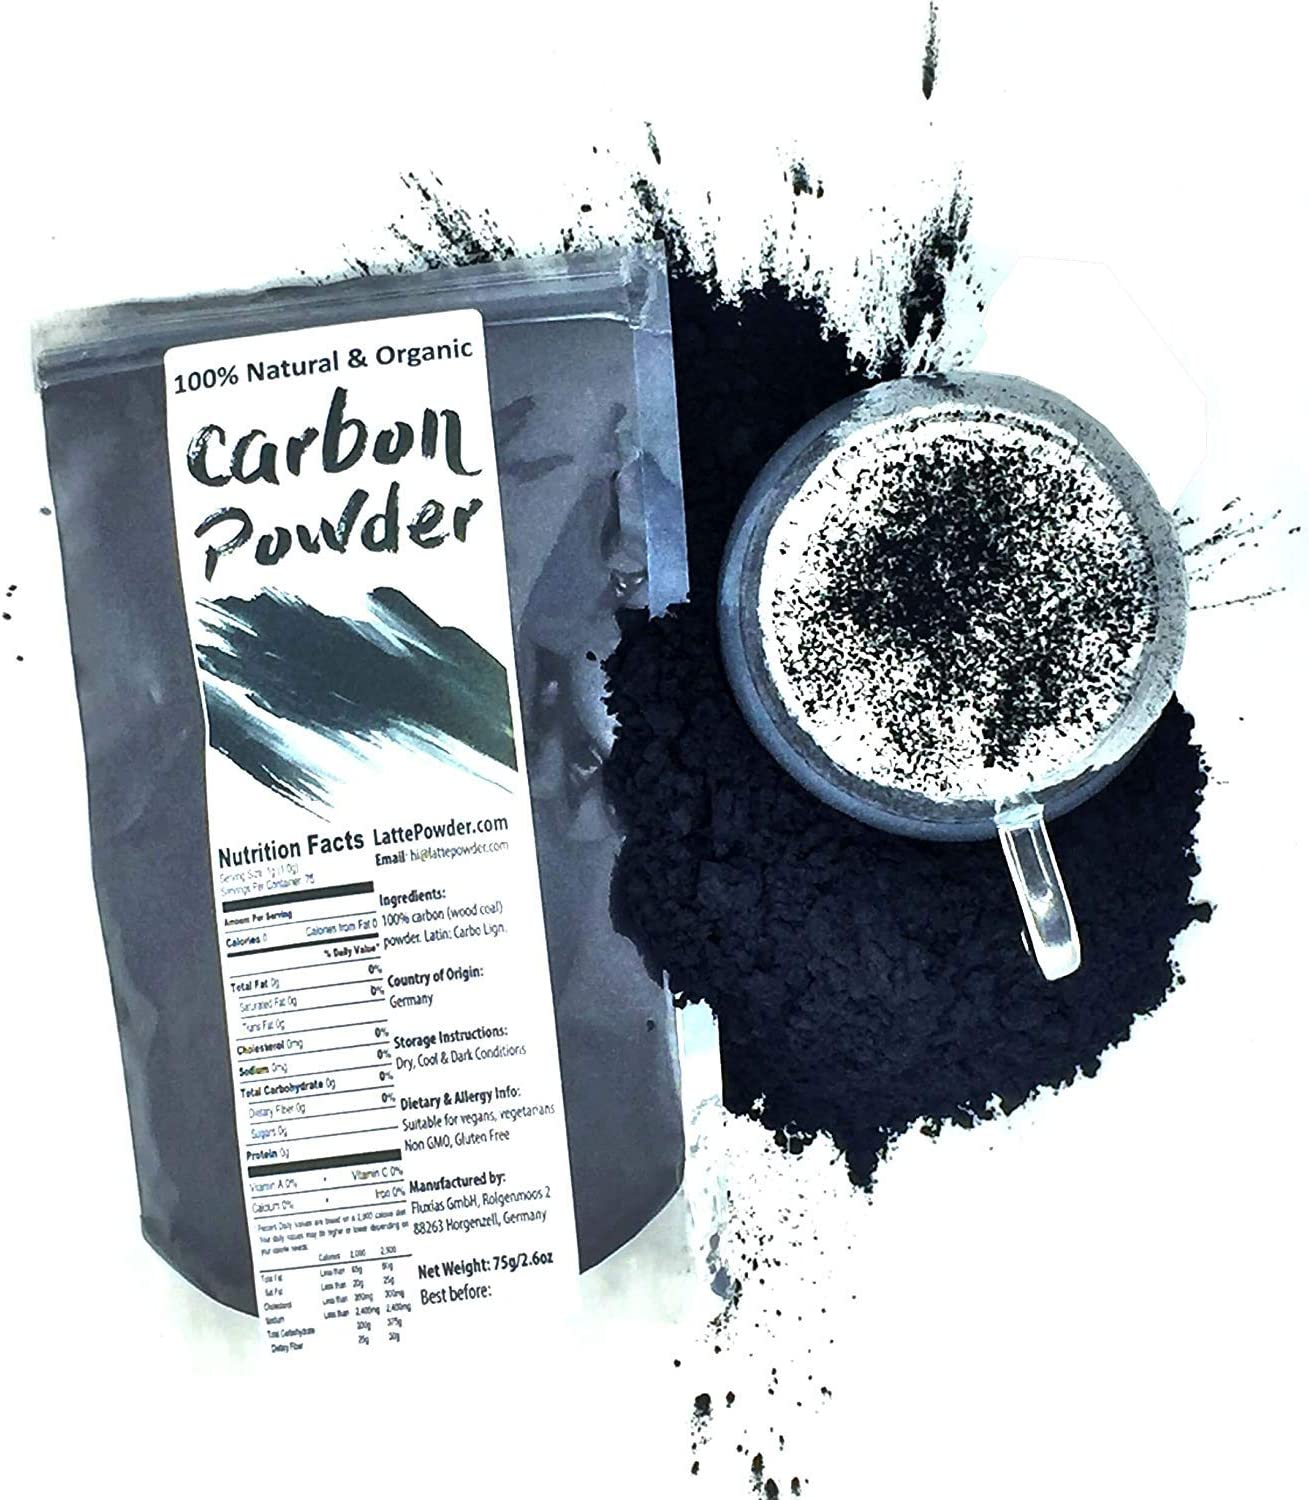 Raw Natural Charcoal Powder - Made from German Hardwood - 100% Organic | Perfect to dye Beverages, Lattes, Cakes and Culinary Delights Pitch Black (Natural Black Food dye) | Net Weight: 2.6oz / 75g